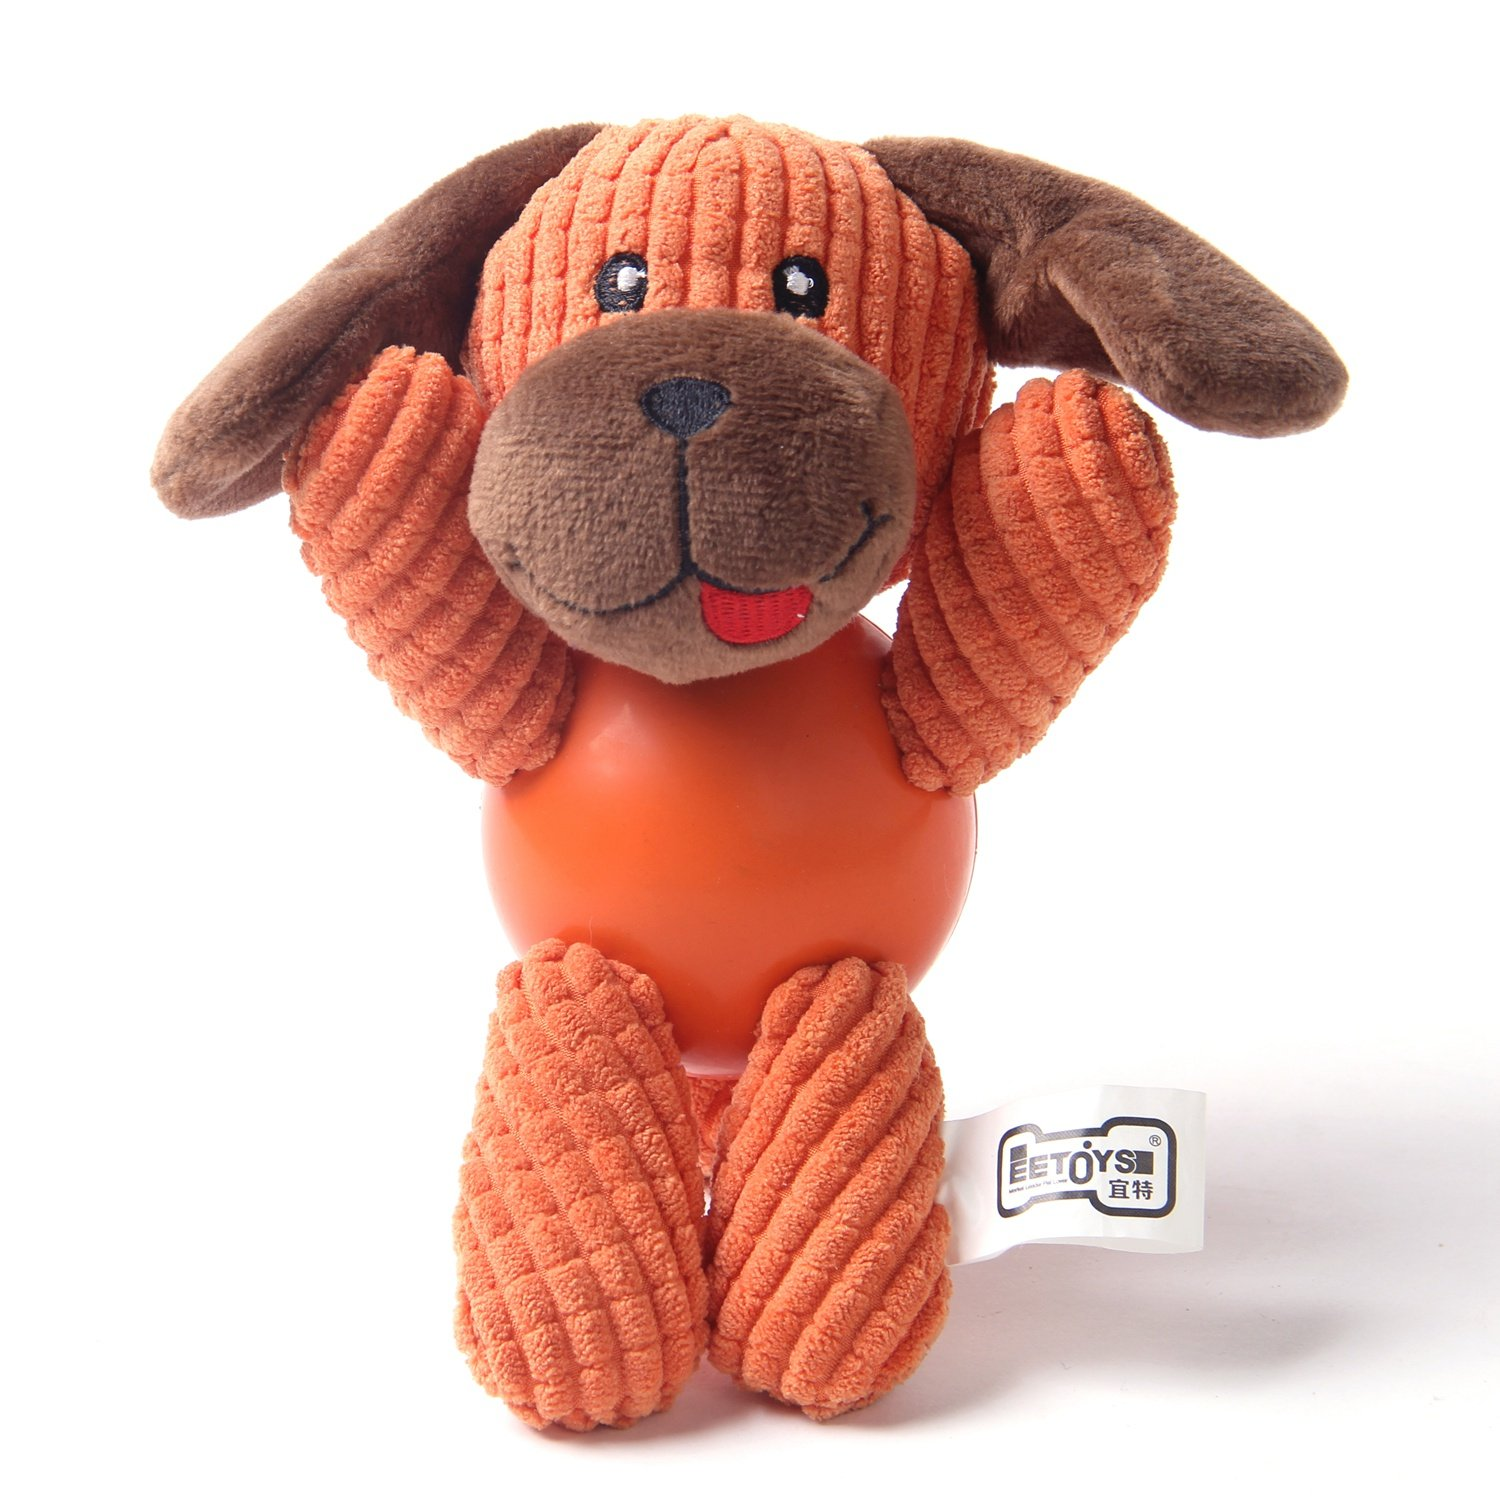 orange Dog Small orange Dog Small EEToys Squeaky Plush Toy Low Stuffing Durable Animal Toy for Small Dog